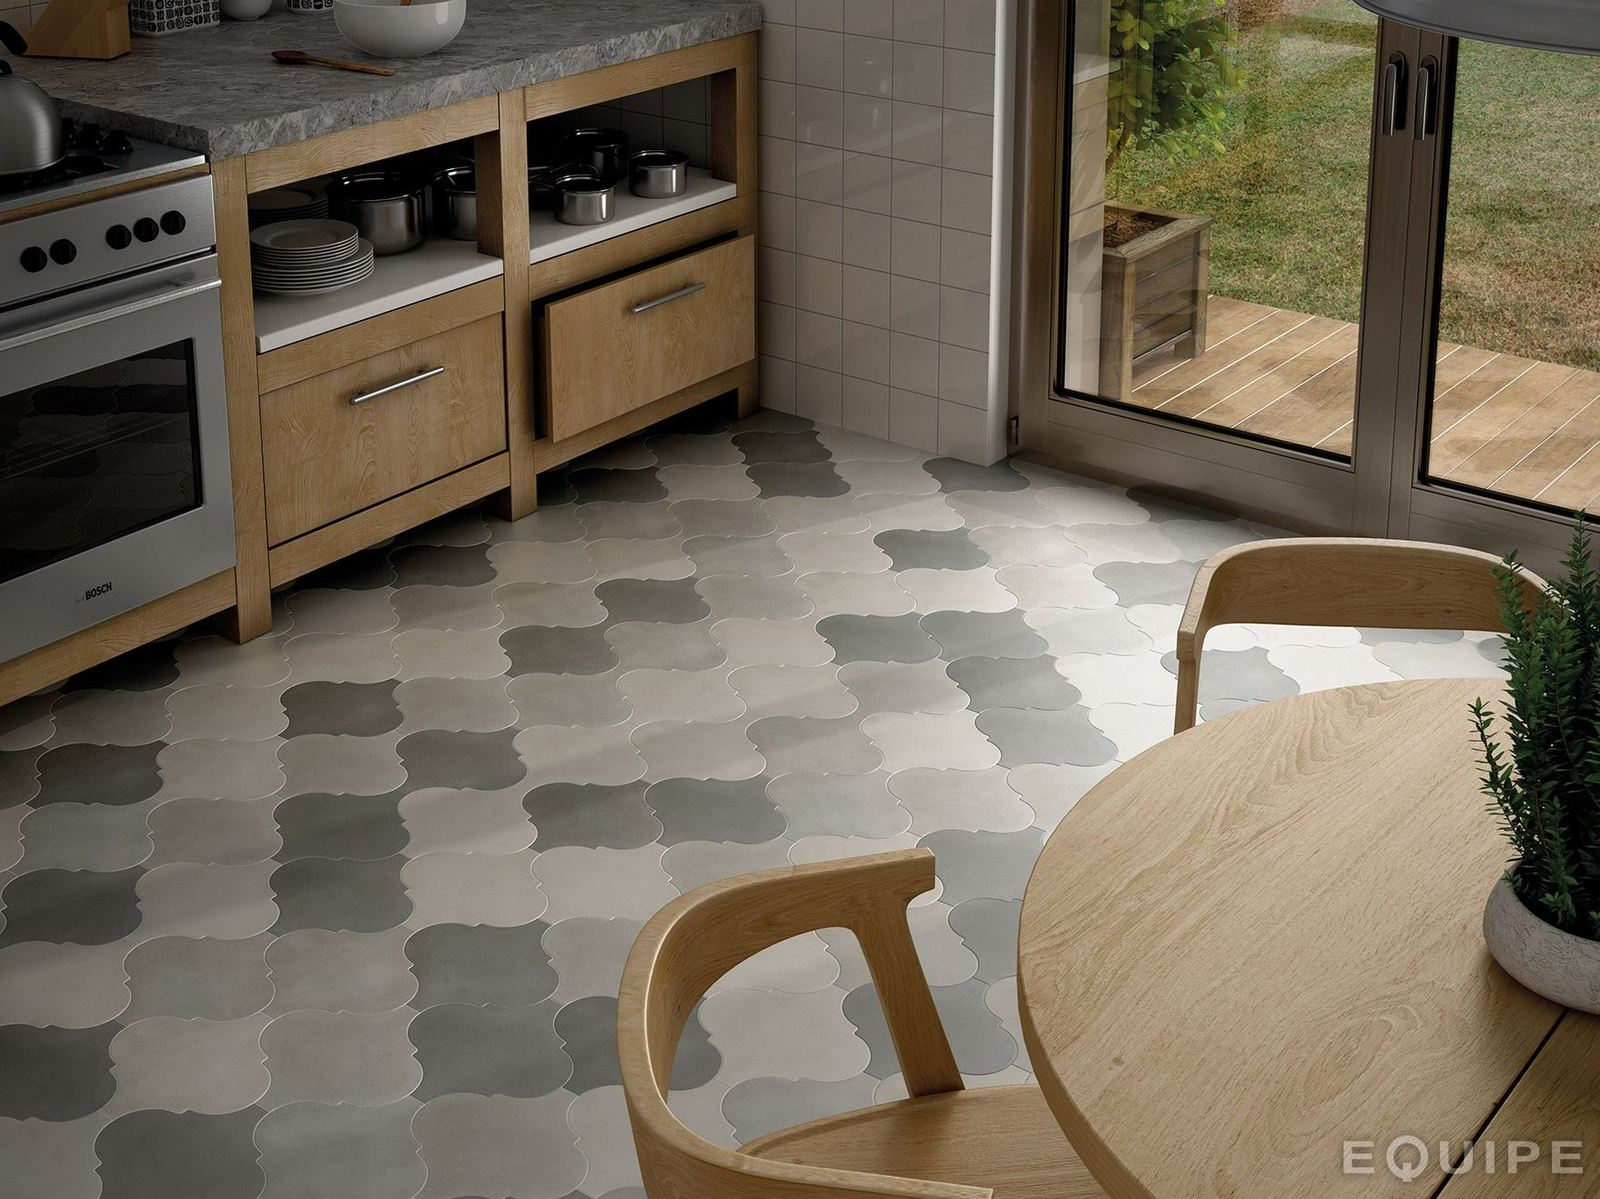 Kitchen Floor Tile Gray 21 Arabesque Tile Ideas For Floor Wall And Backsplash